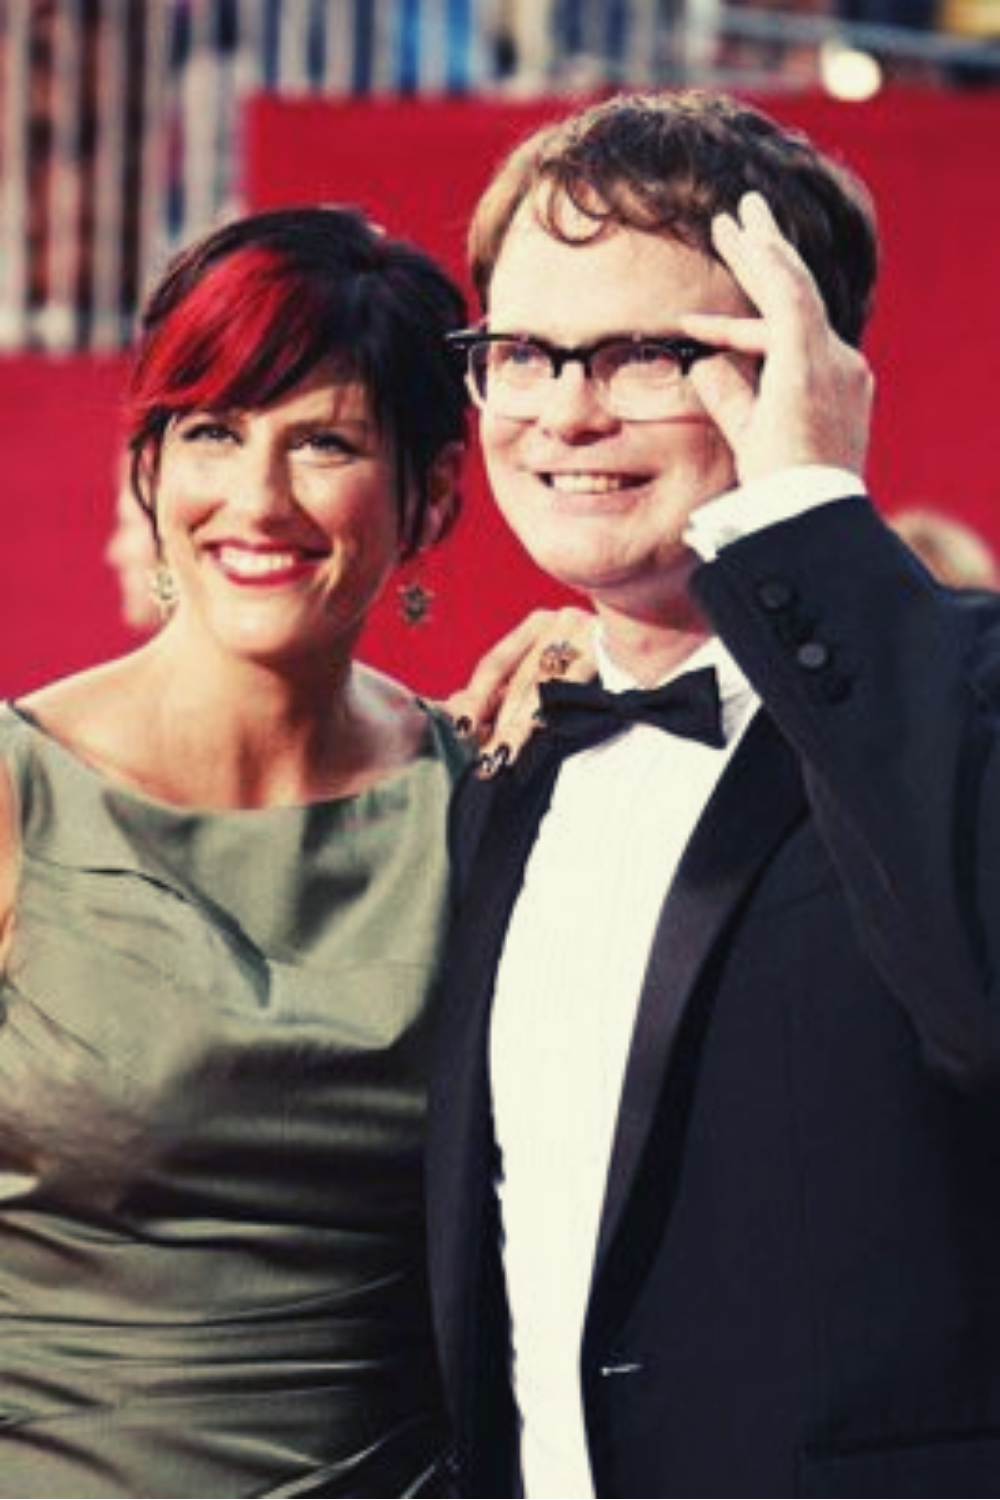 Holiday Reinhorn and Rainn Wilson